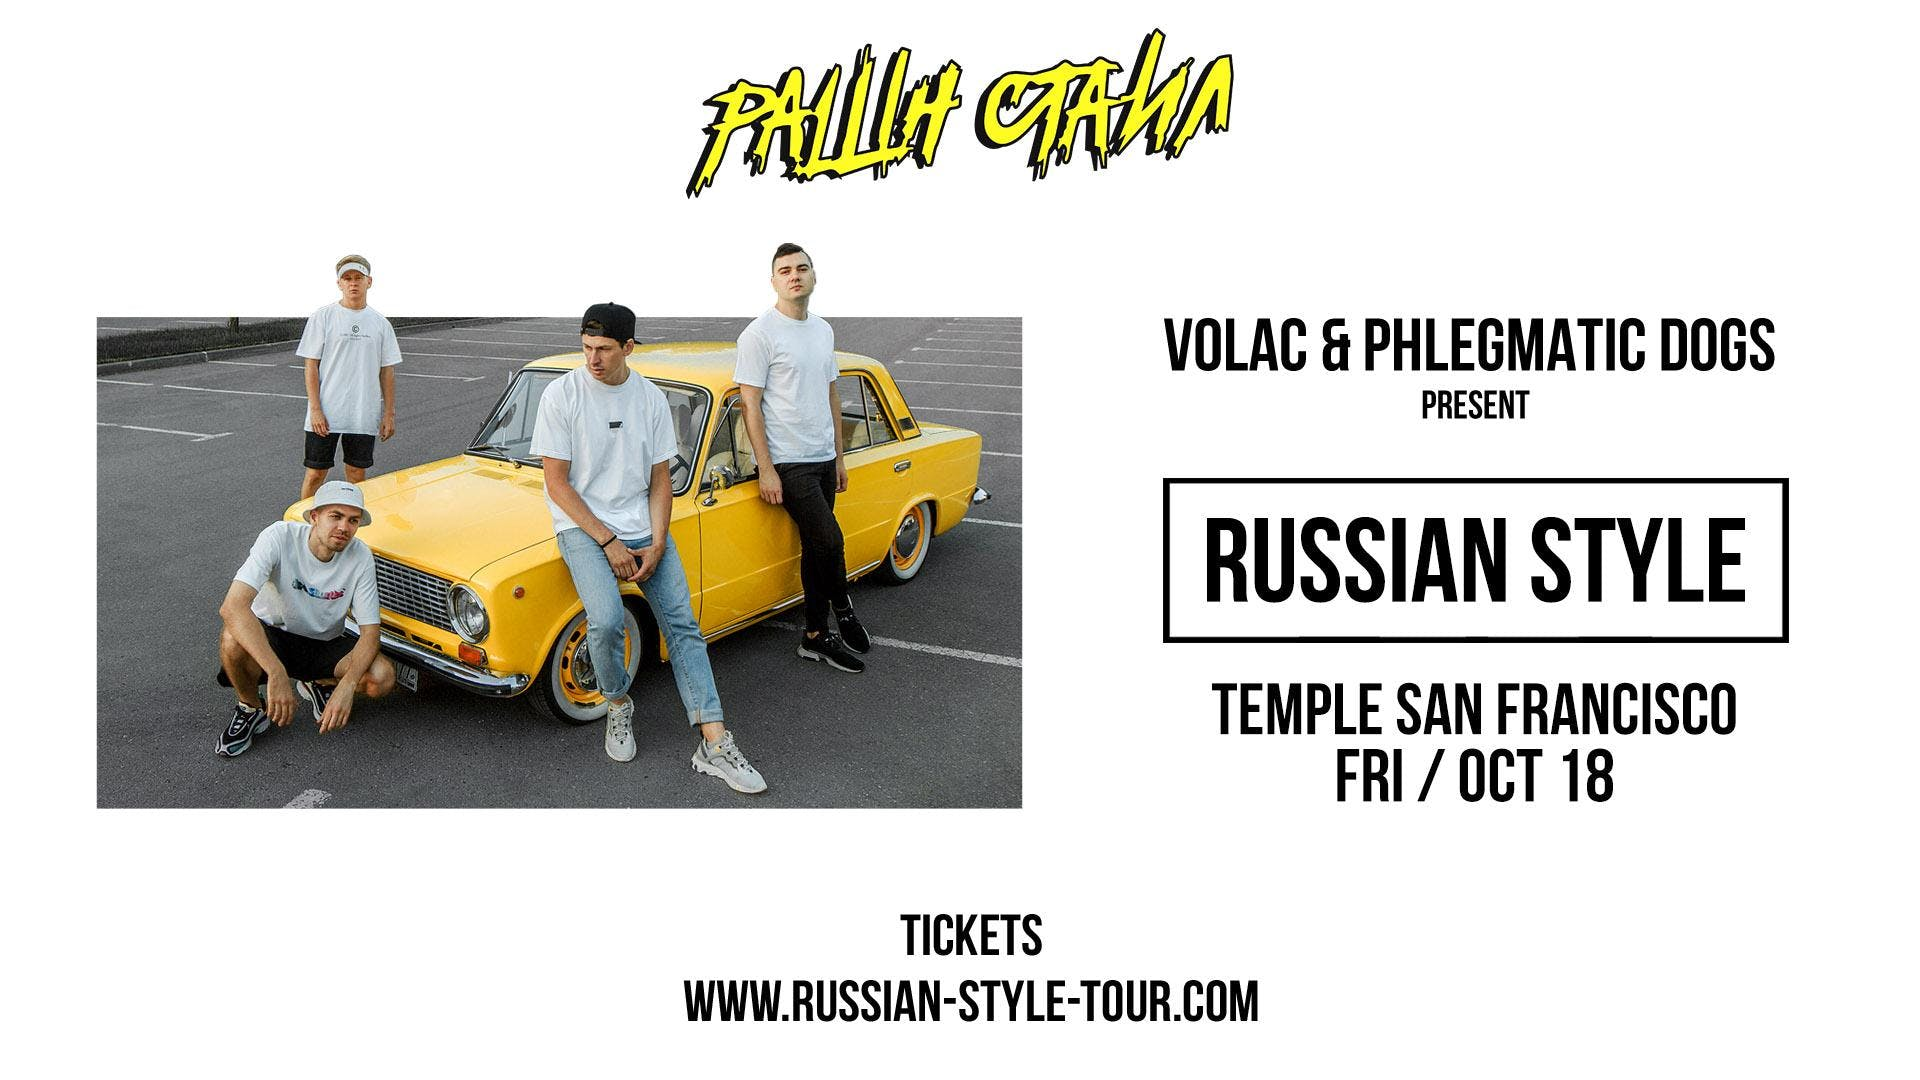 VOLAC & Phlegmatic Dogs Present Russian Style at Temple San Francisco